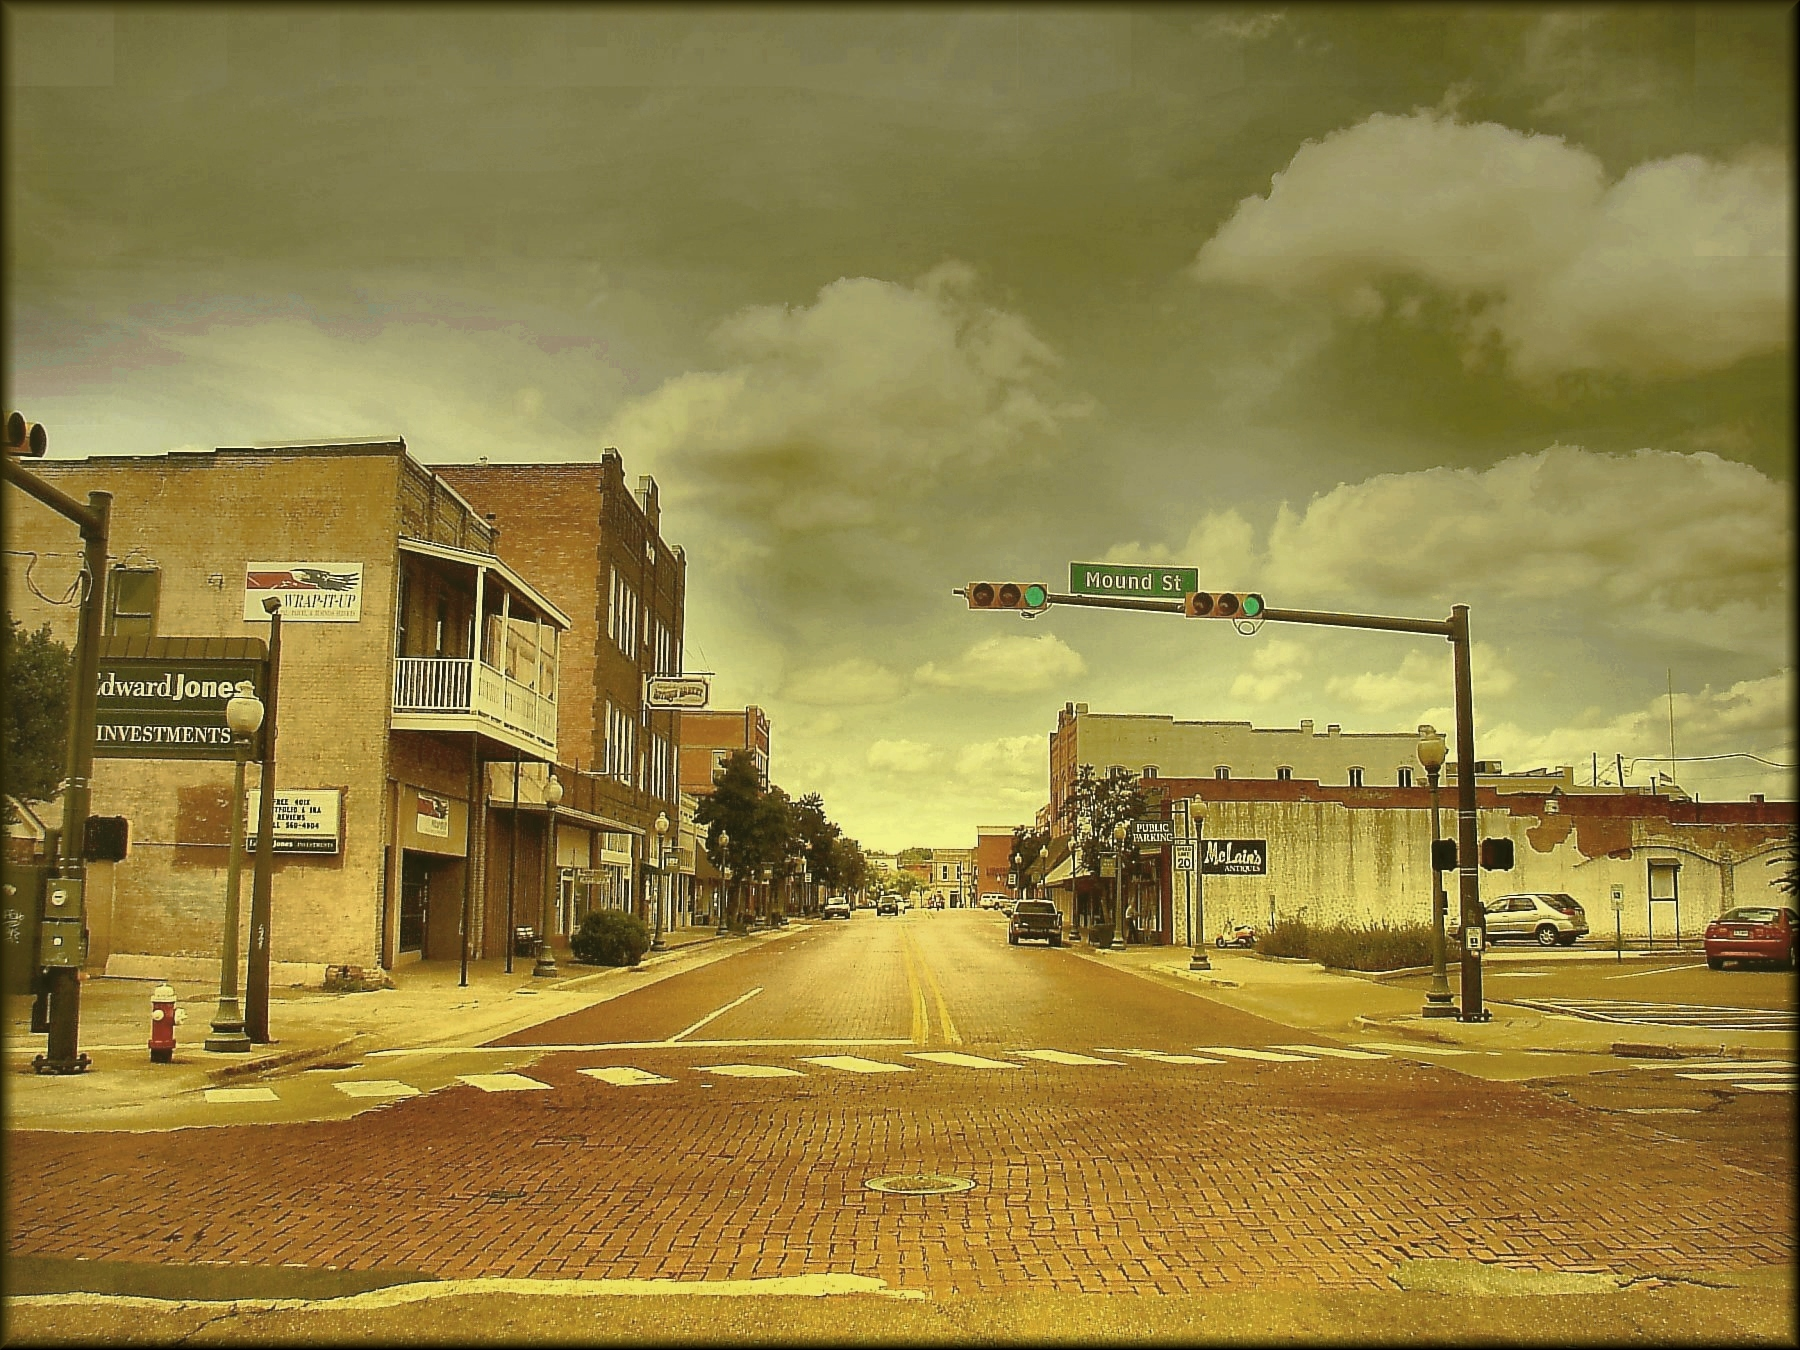 The View West from East Main and Mound St. in Downtown Historic Nacogdoches